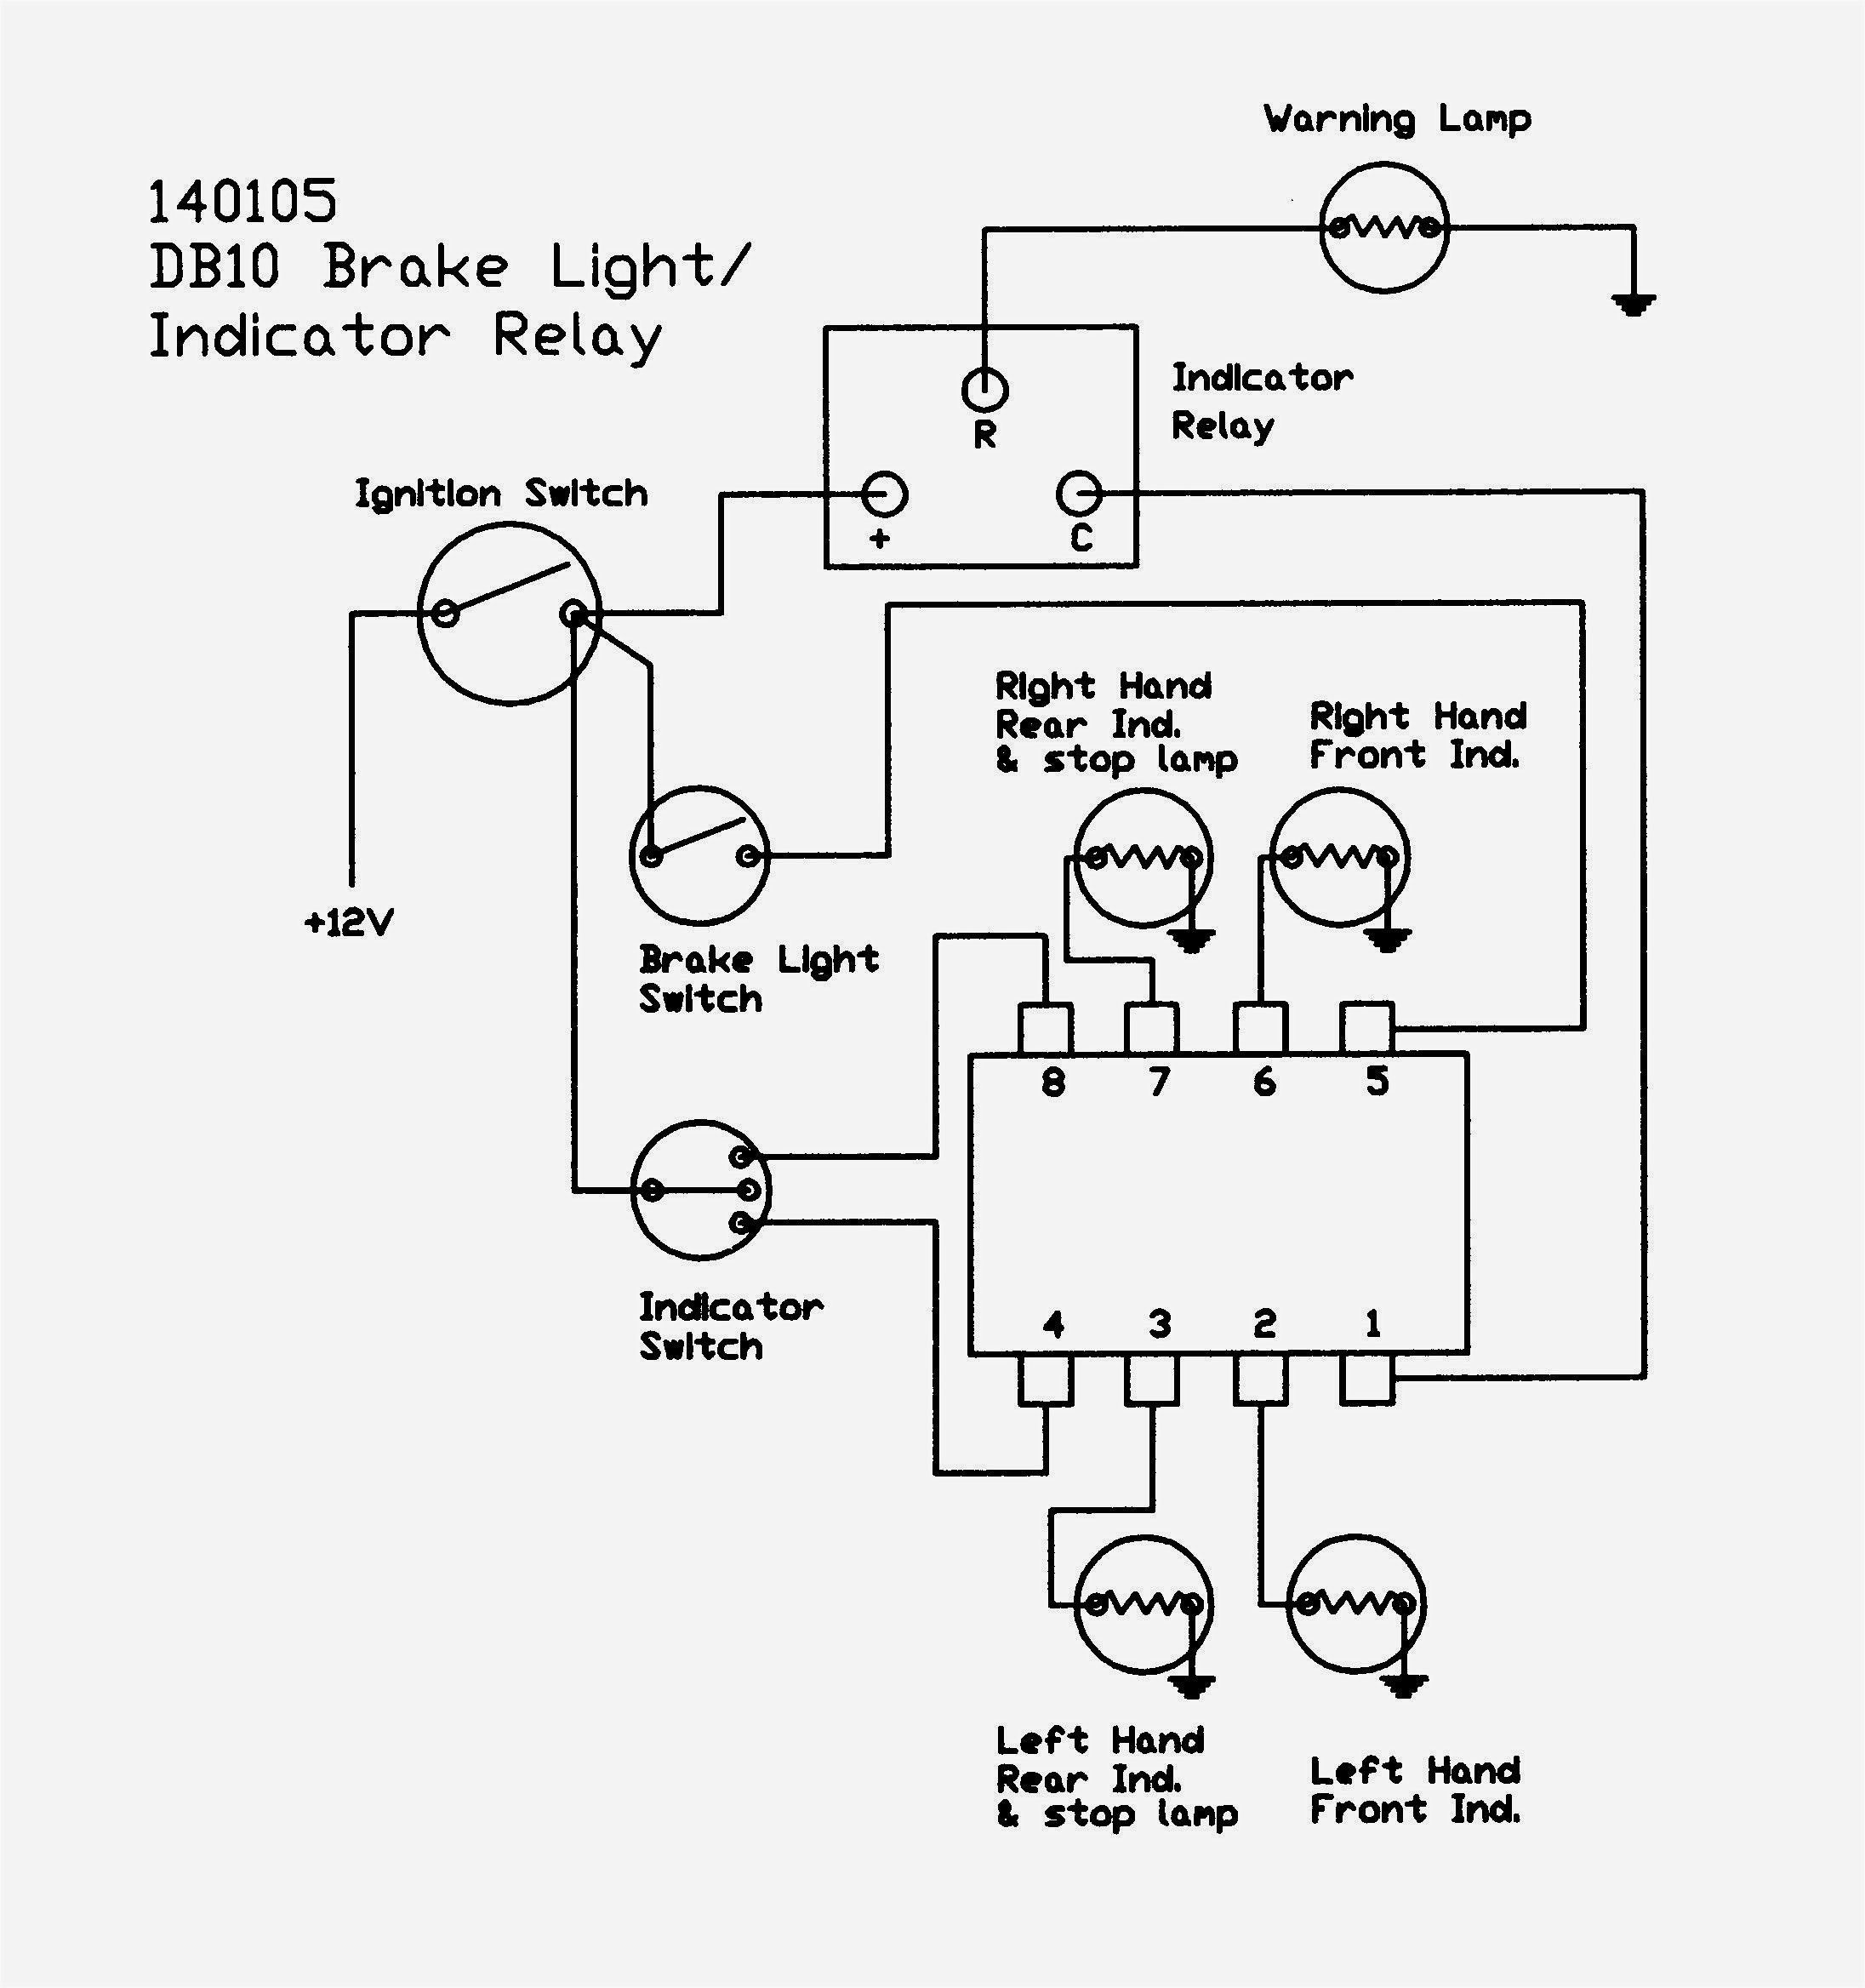 New Mk Emergency Key Switch Wiring Diagram #diagram #diagramsample  #diagramtemplate #wiringdiagram … | Light switch wiring, Honeywell  thermostats, Thermostat wiringPinterest